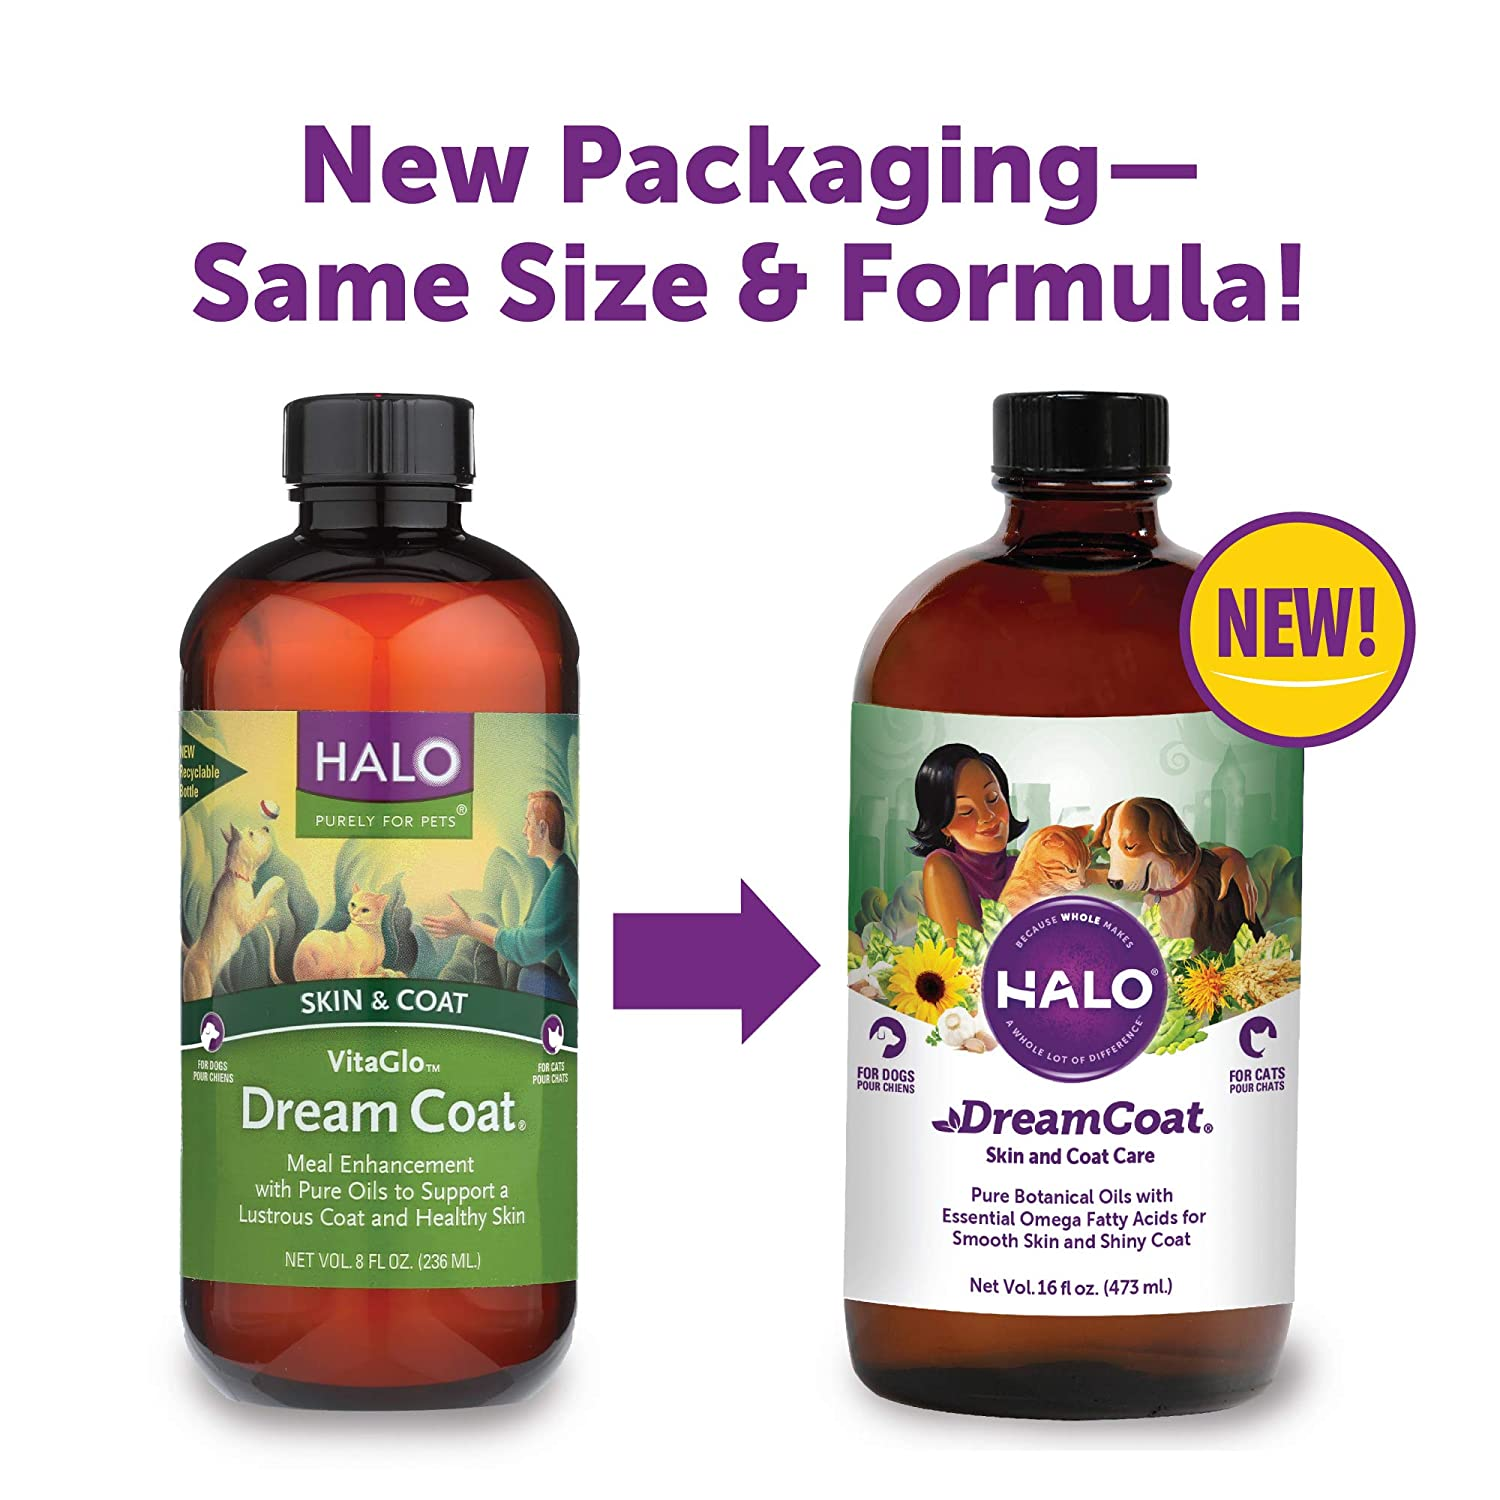 16oz Jar Halo Vita Glo Dream Coat Natural Supplement for Dogs and Cats, 16oz